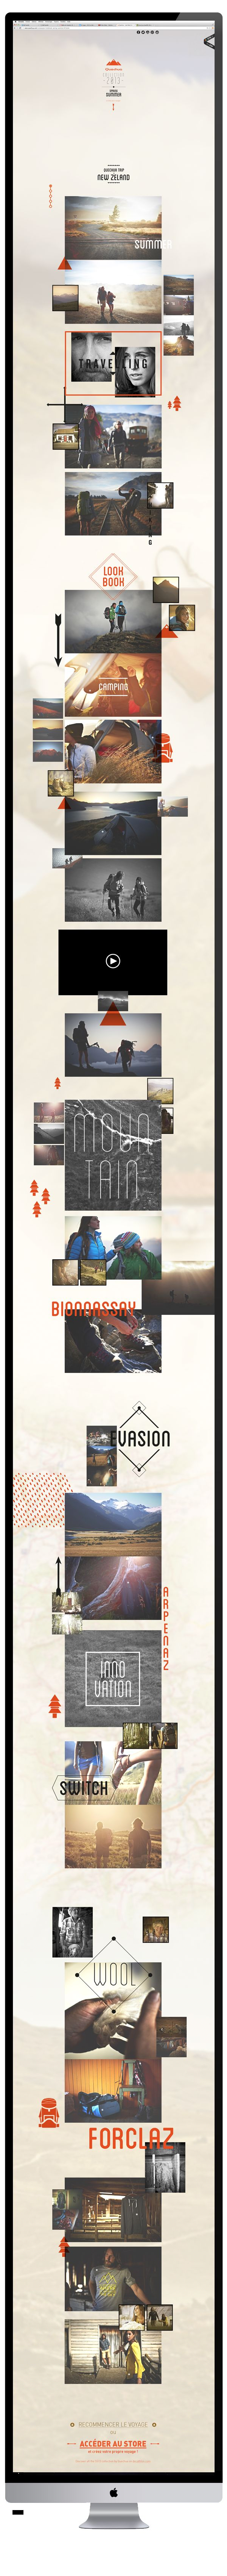 LOOKBOOK QUECHUA by Blandin Timothé, via Behance